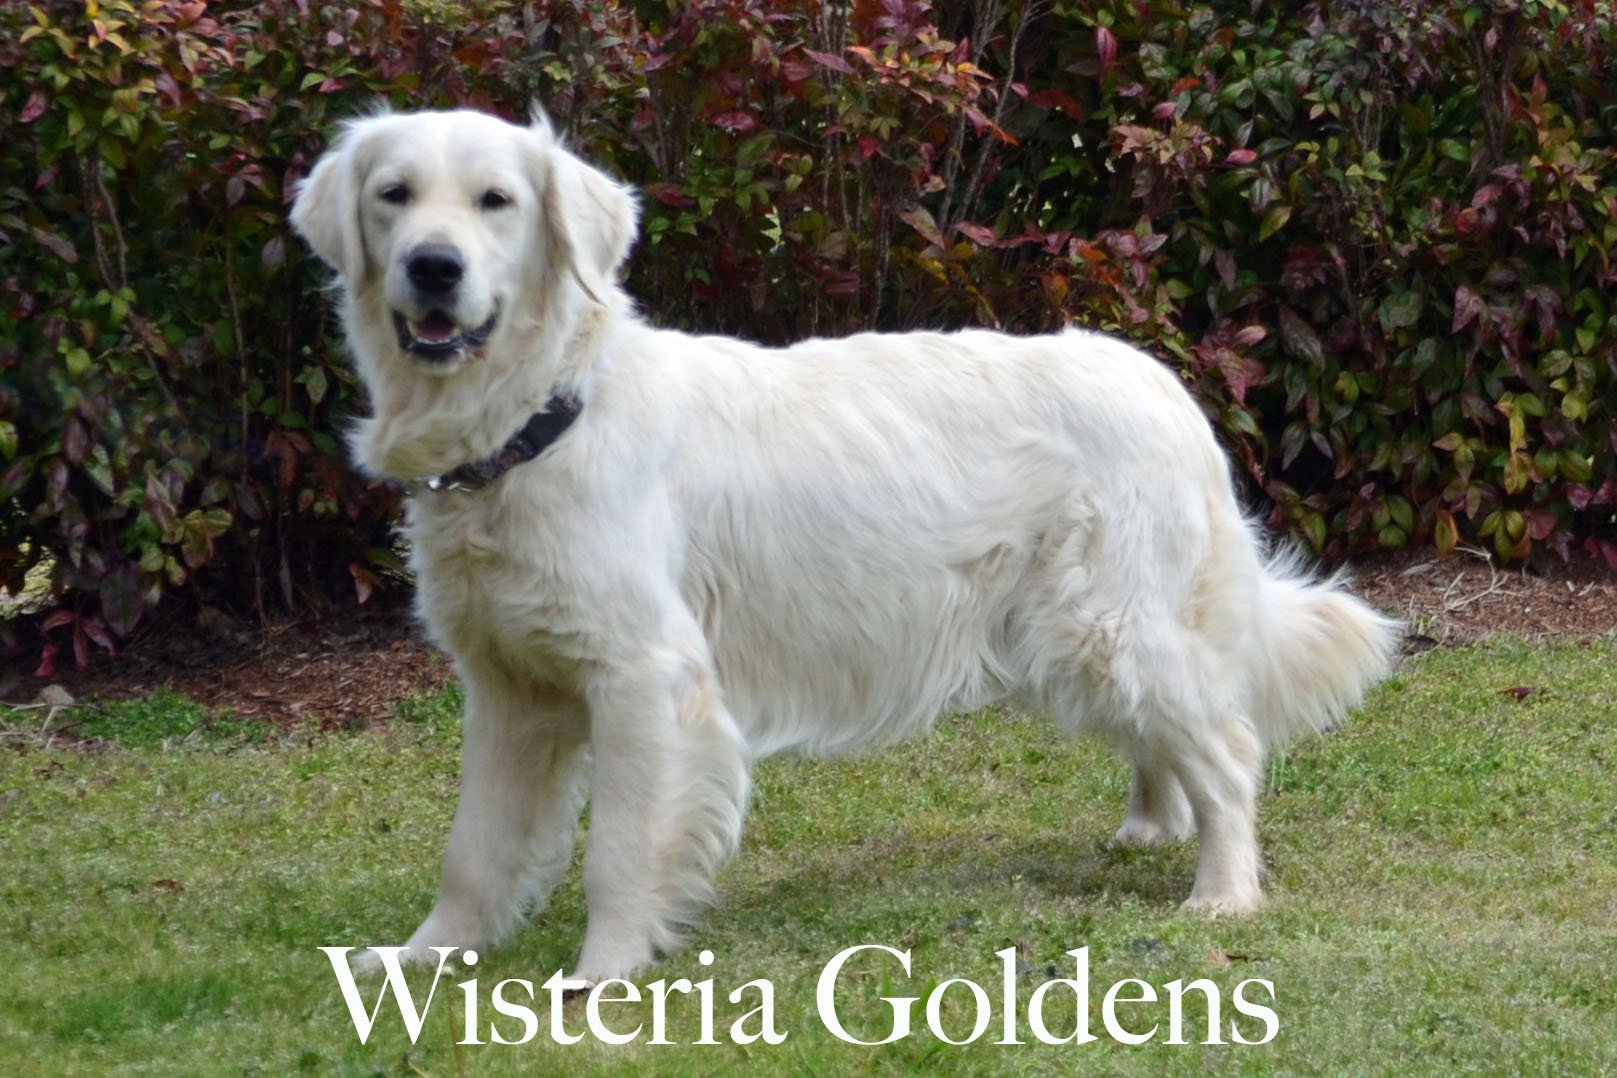 Harmony-2-harmony-full-english-creme-goldens-retrievers-wisteria-goldens